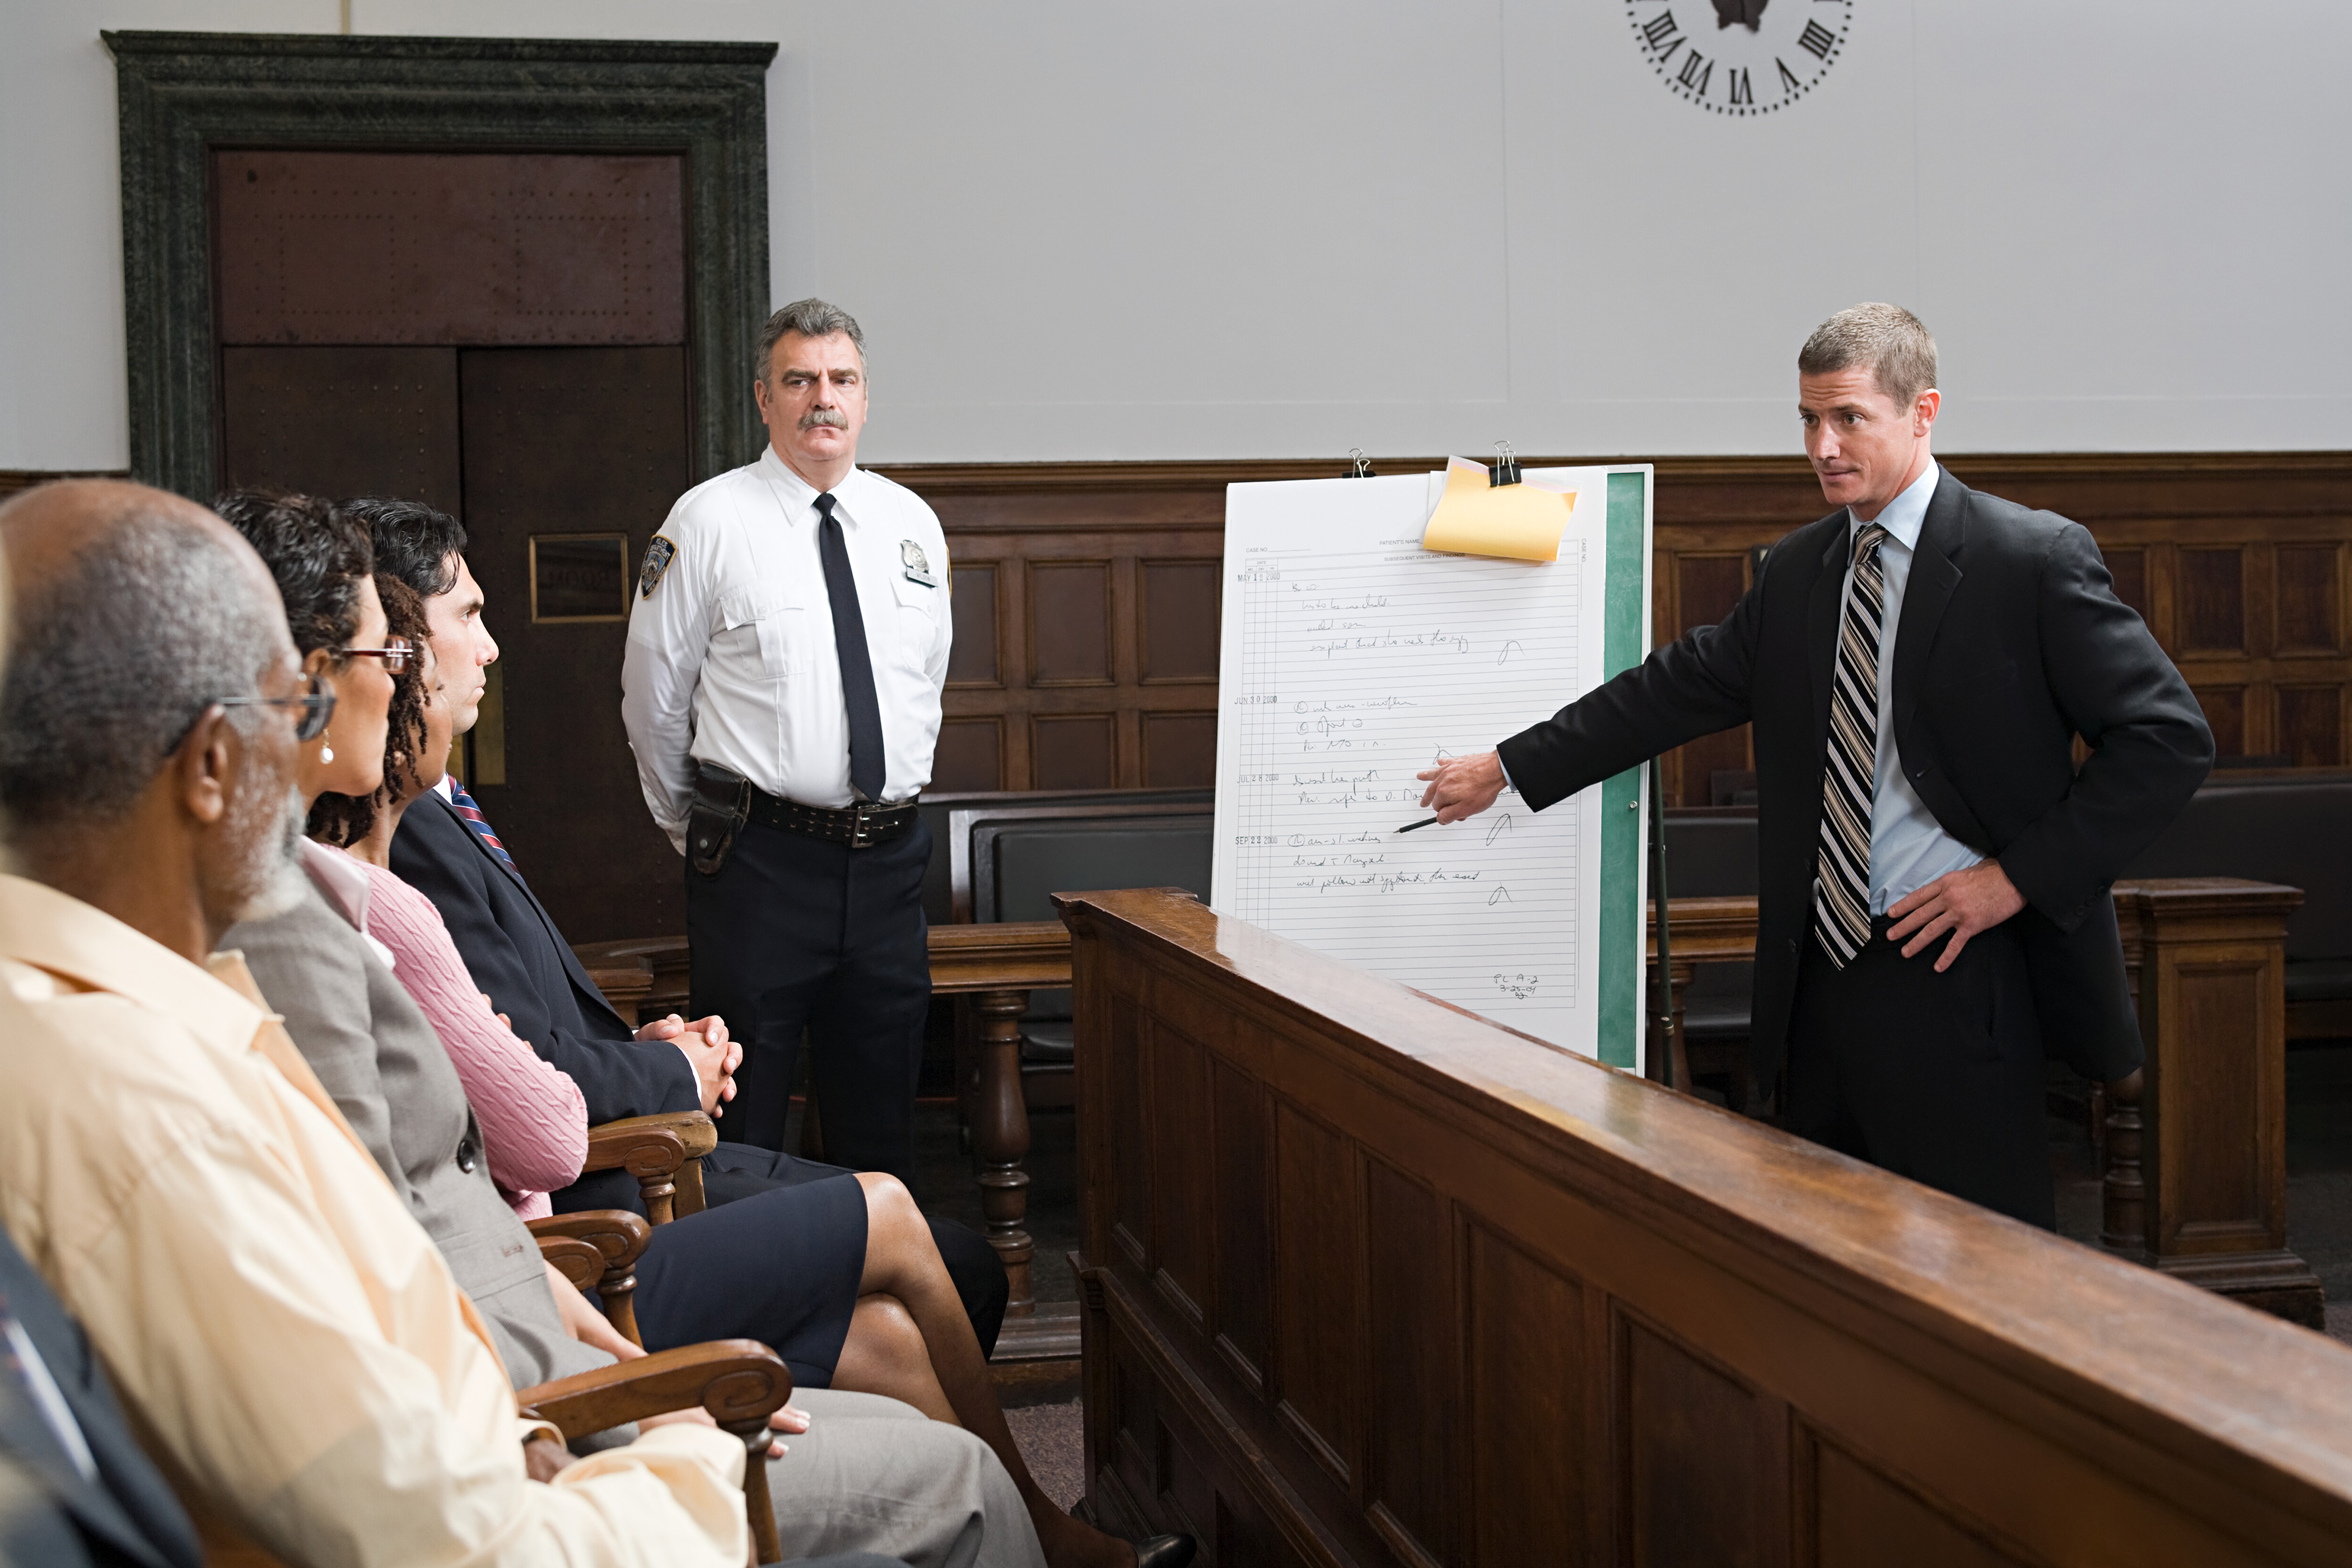 A lawyer and the jury. (Getty Images)